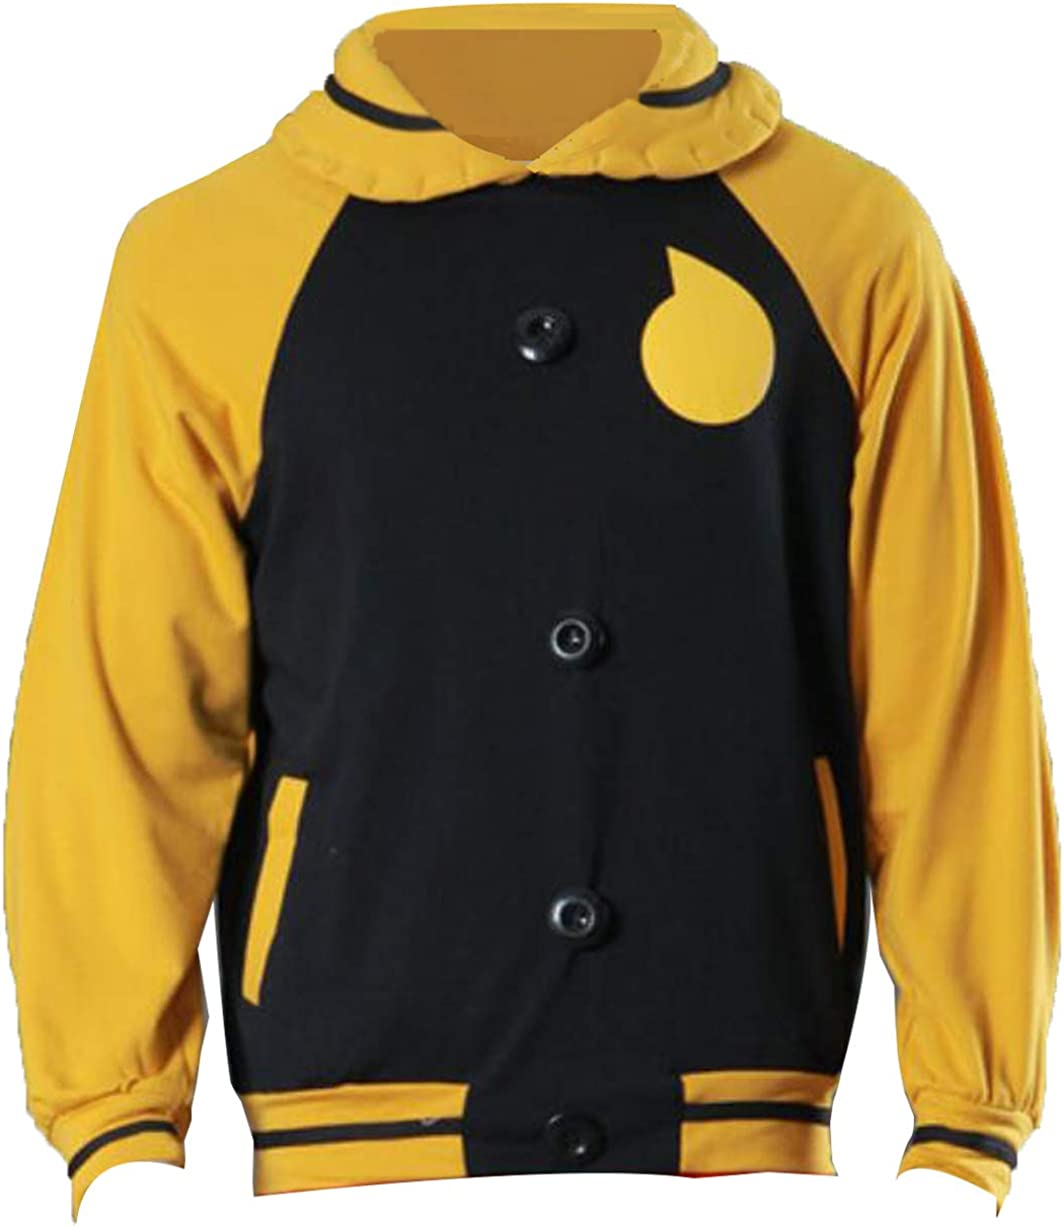 Poetic Walk Soul Eater New products world's highest quality Ranking TOP7 popular Cosplay Jacket Evans Manga Costume Anime